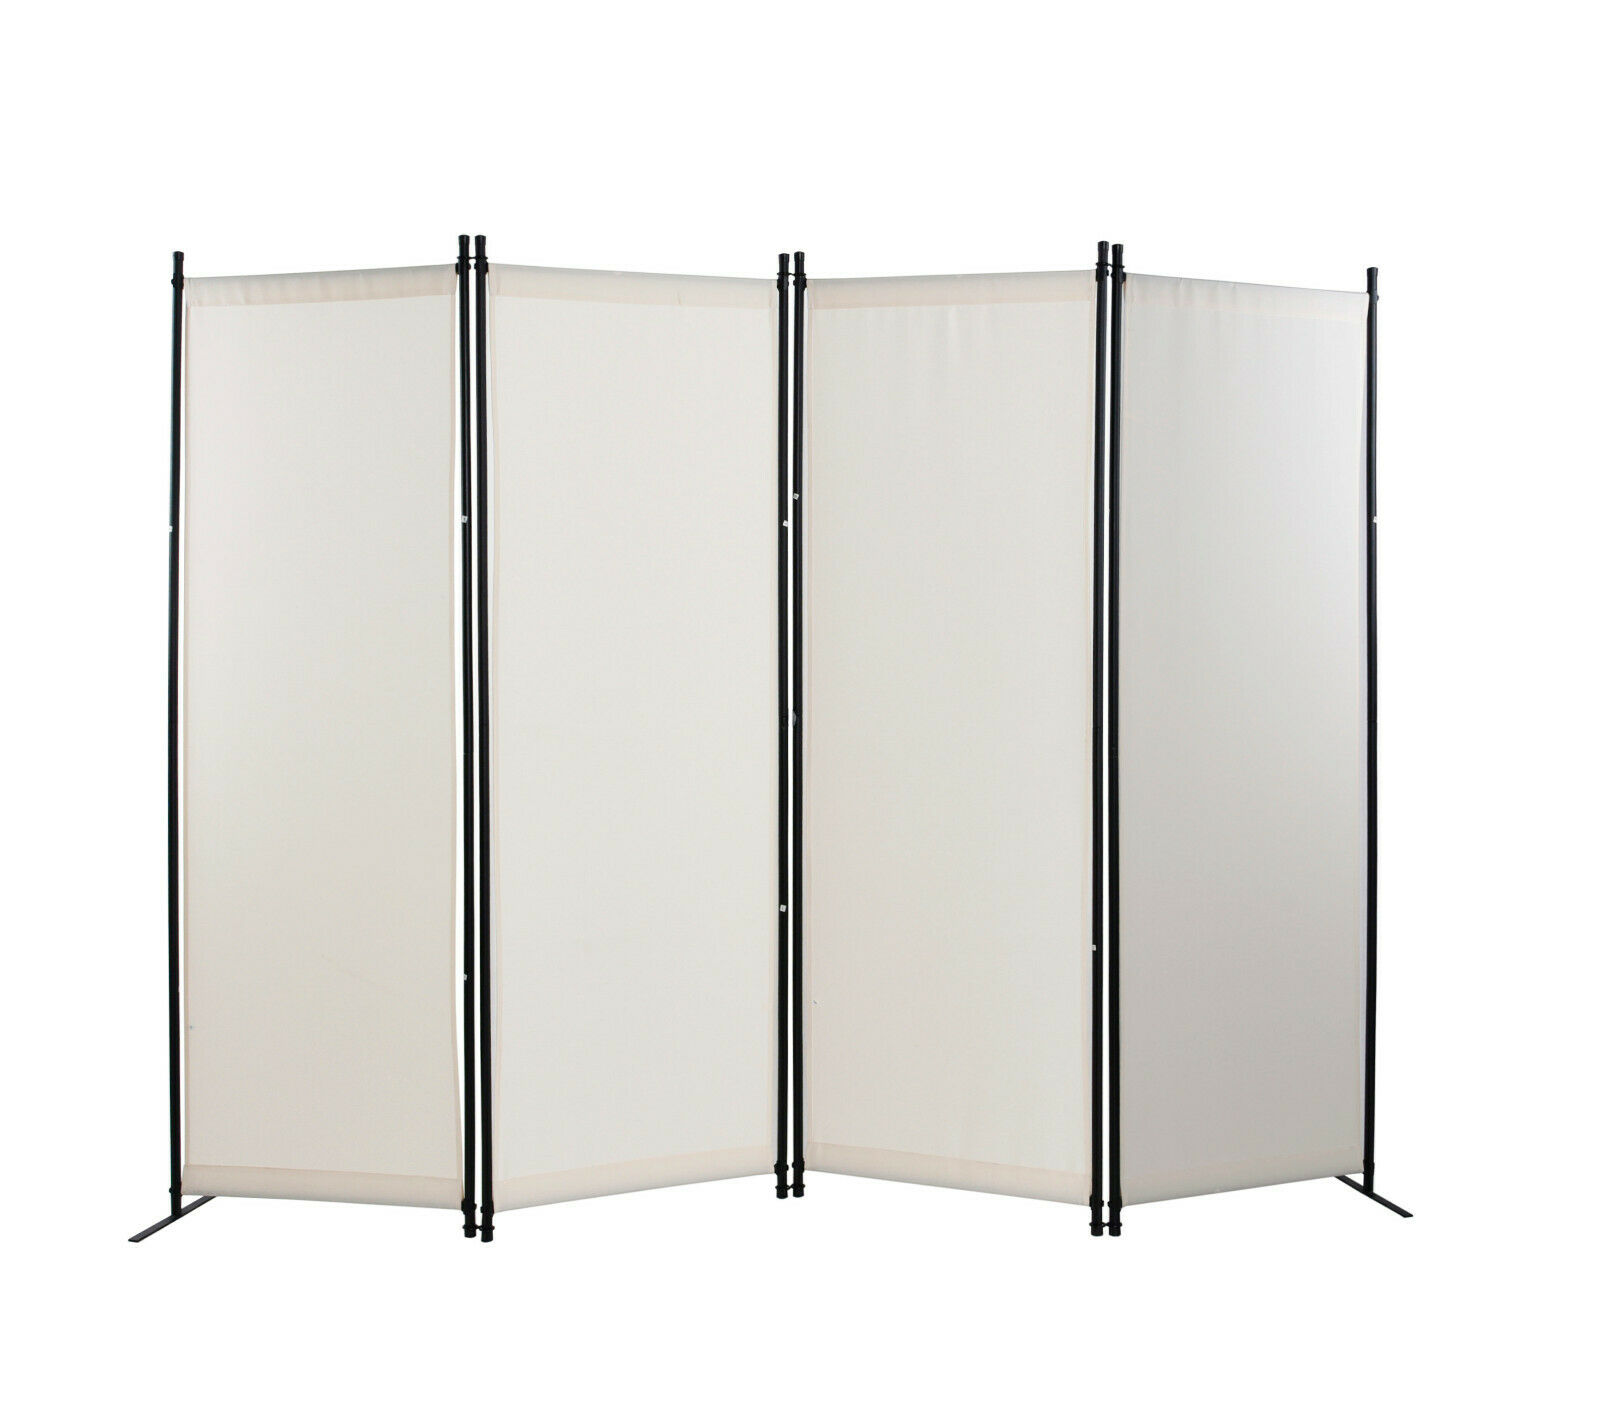 4 panel room divider privacy screens home